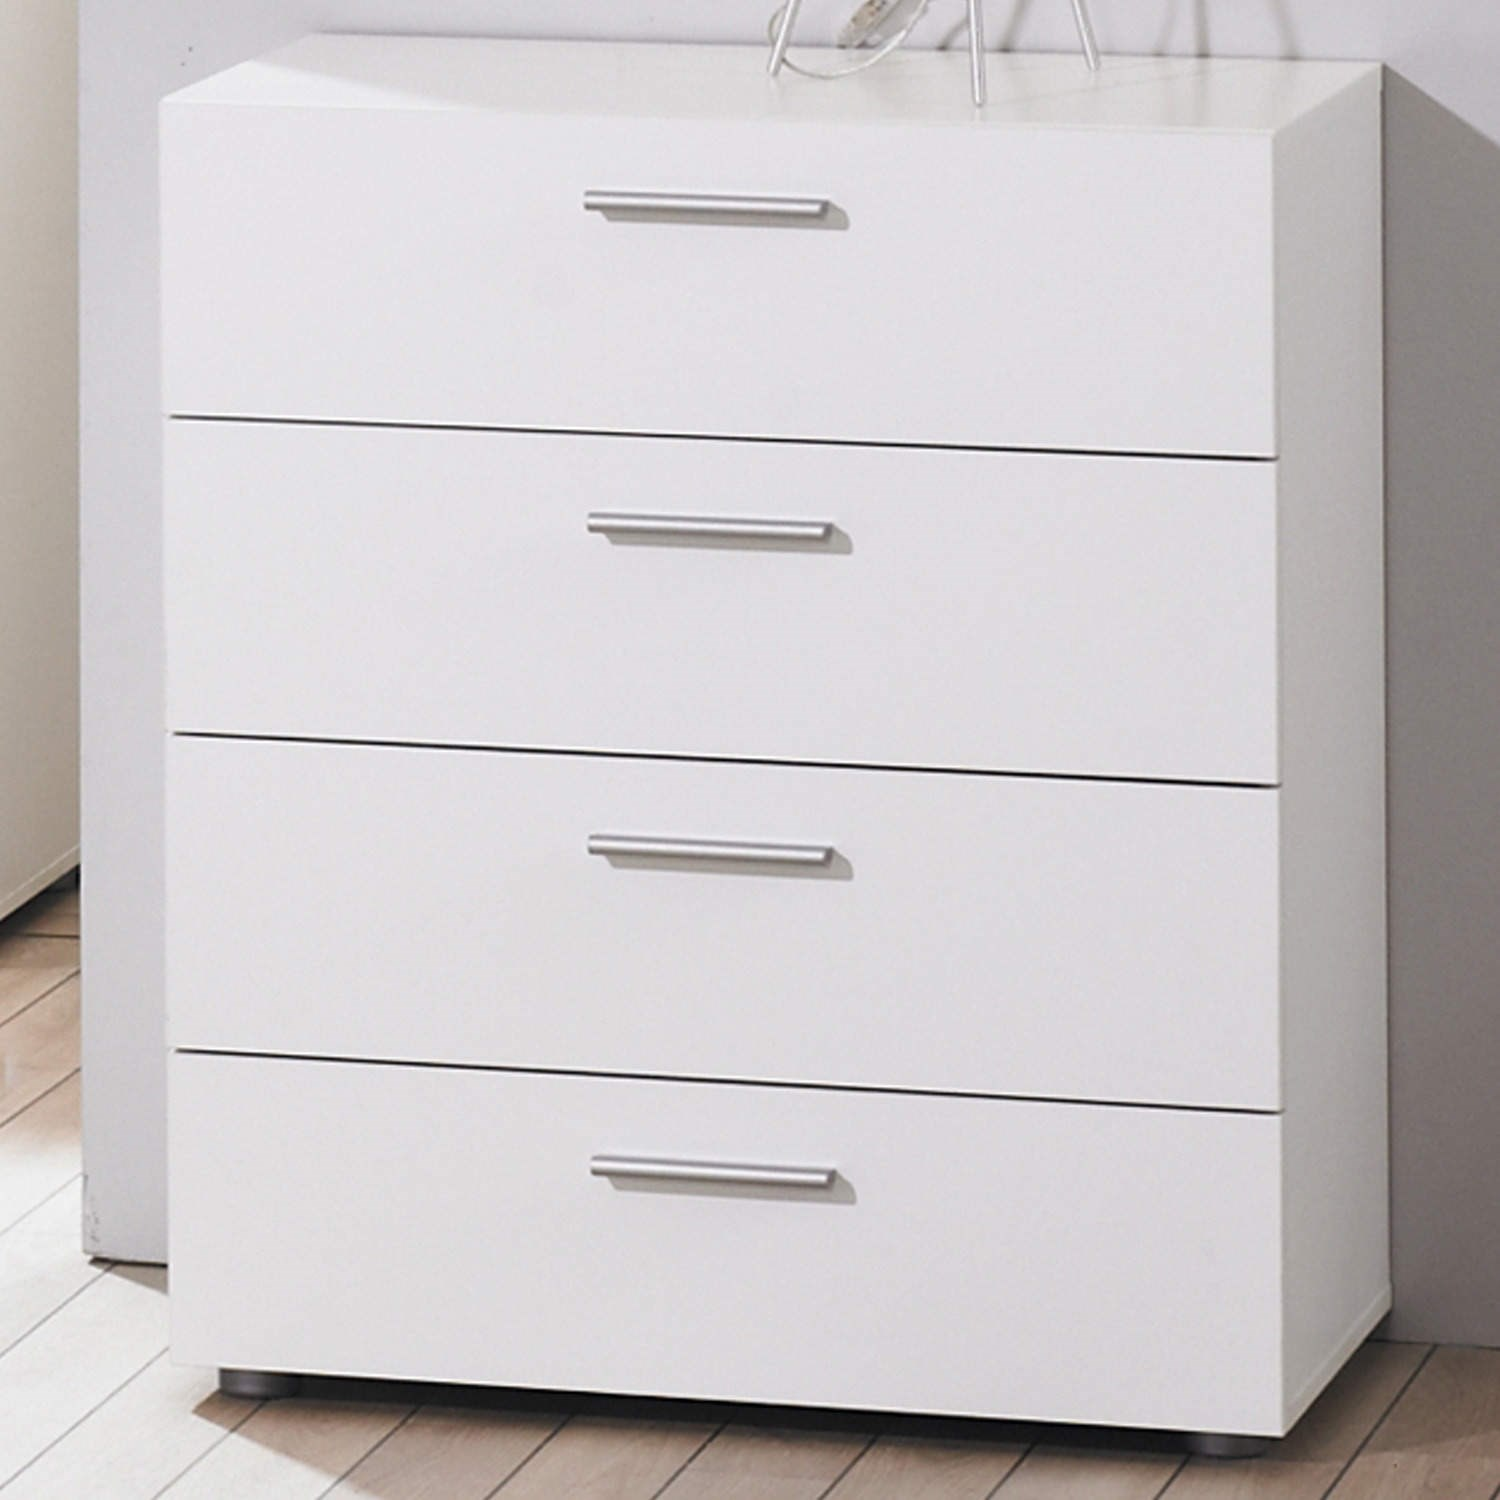 Modern white simple billi pepe drawer chest of drawers